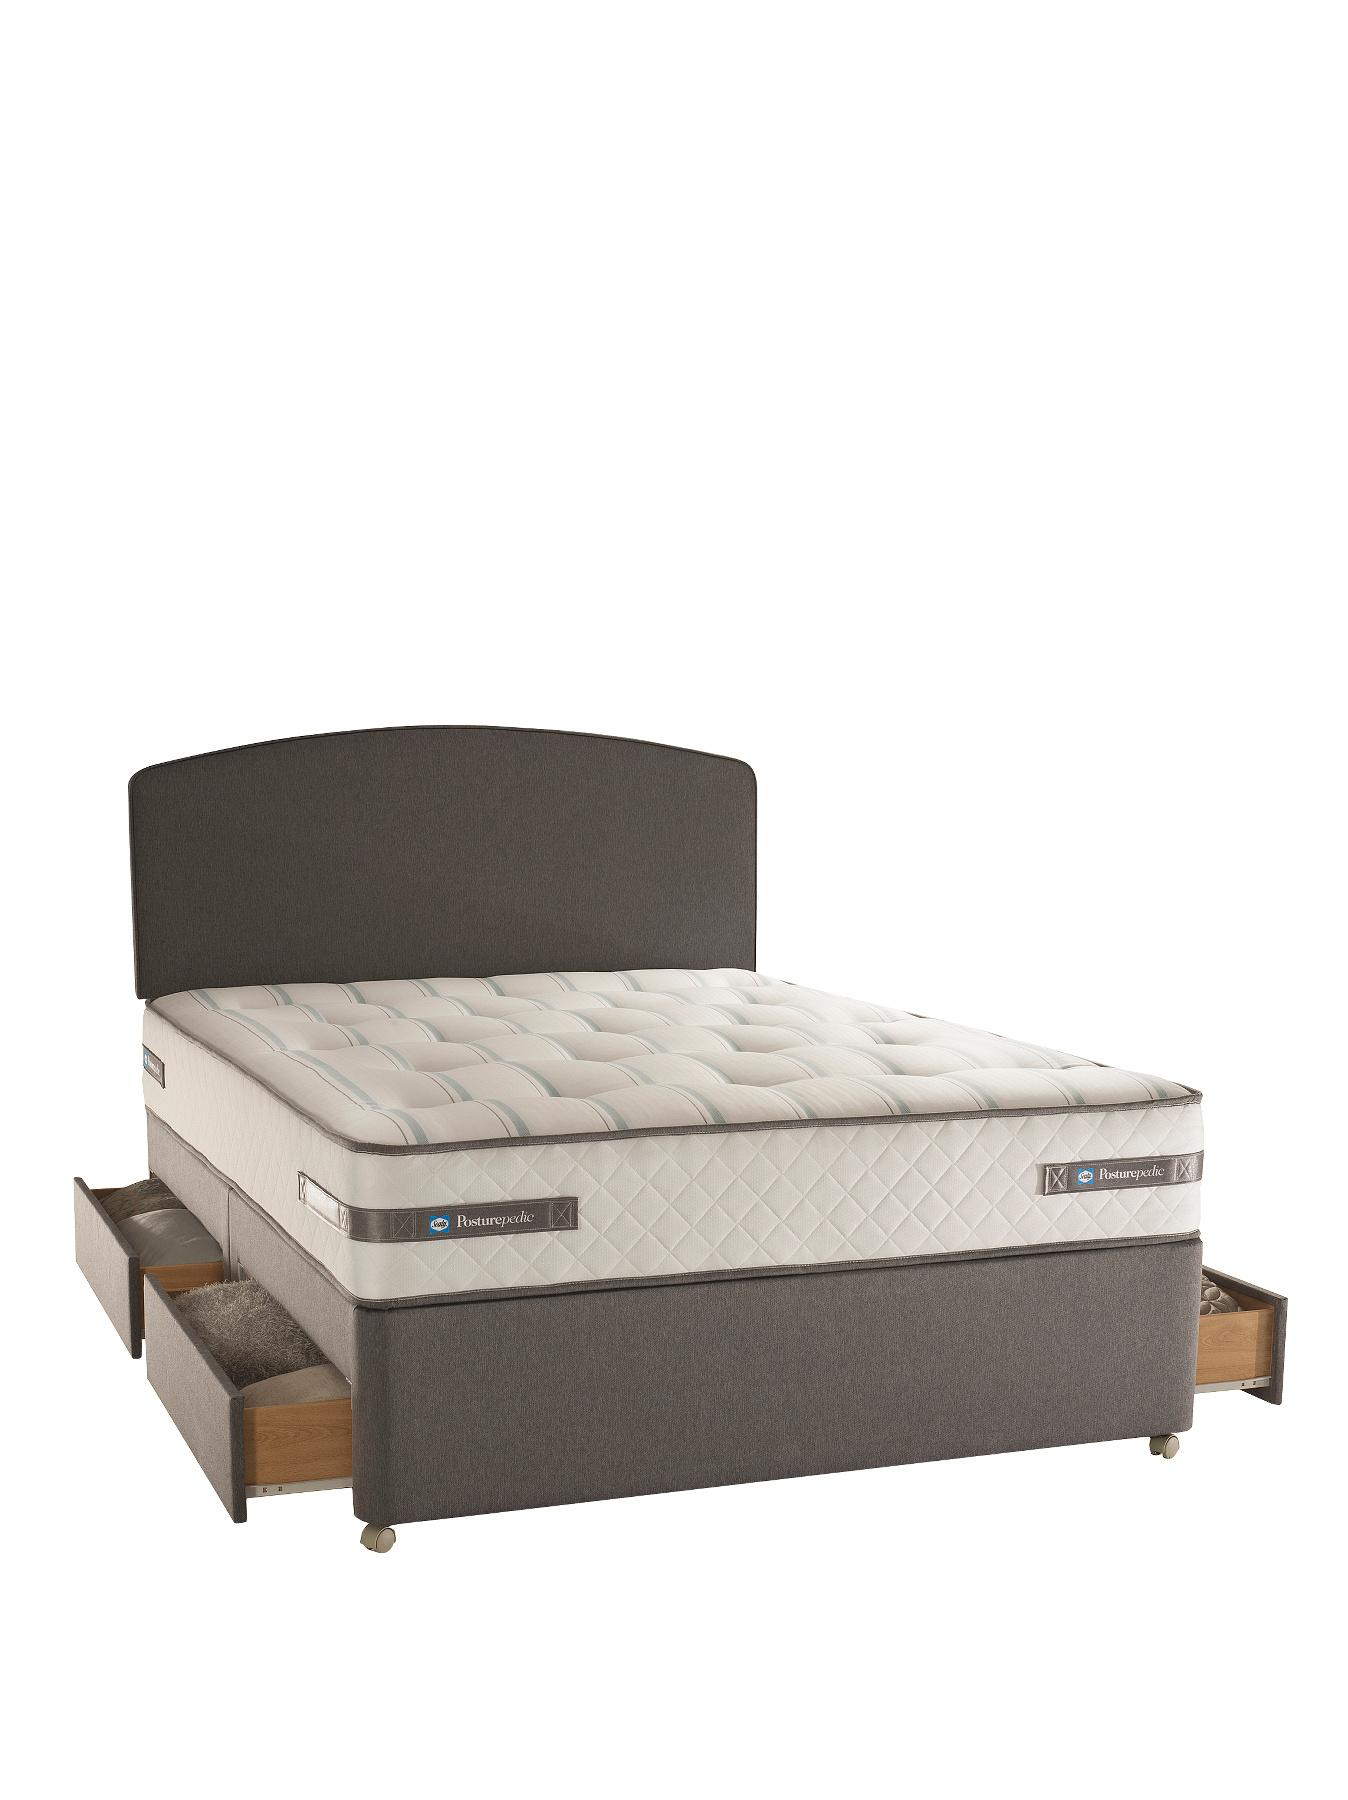 Silentnight Miracoil Heather Memory Kingsize Mattress Bed Mattress Sale